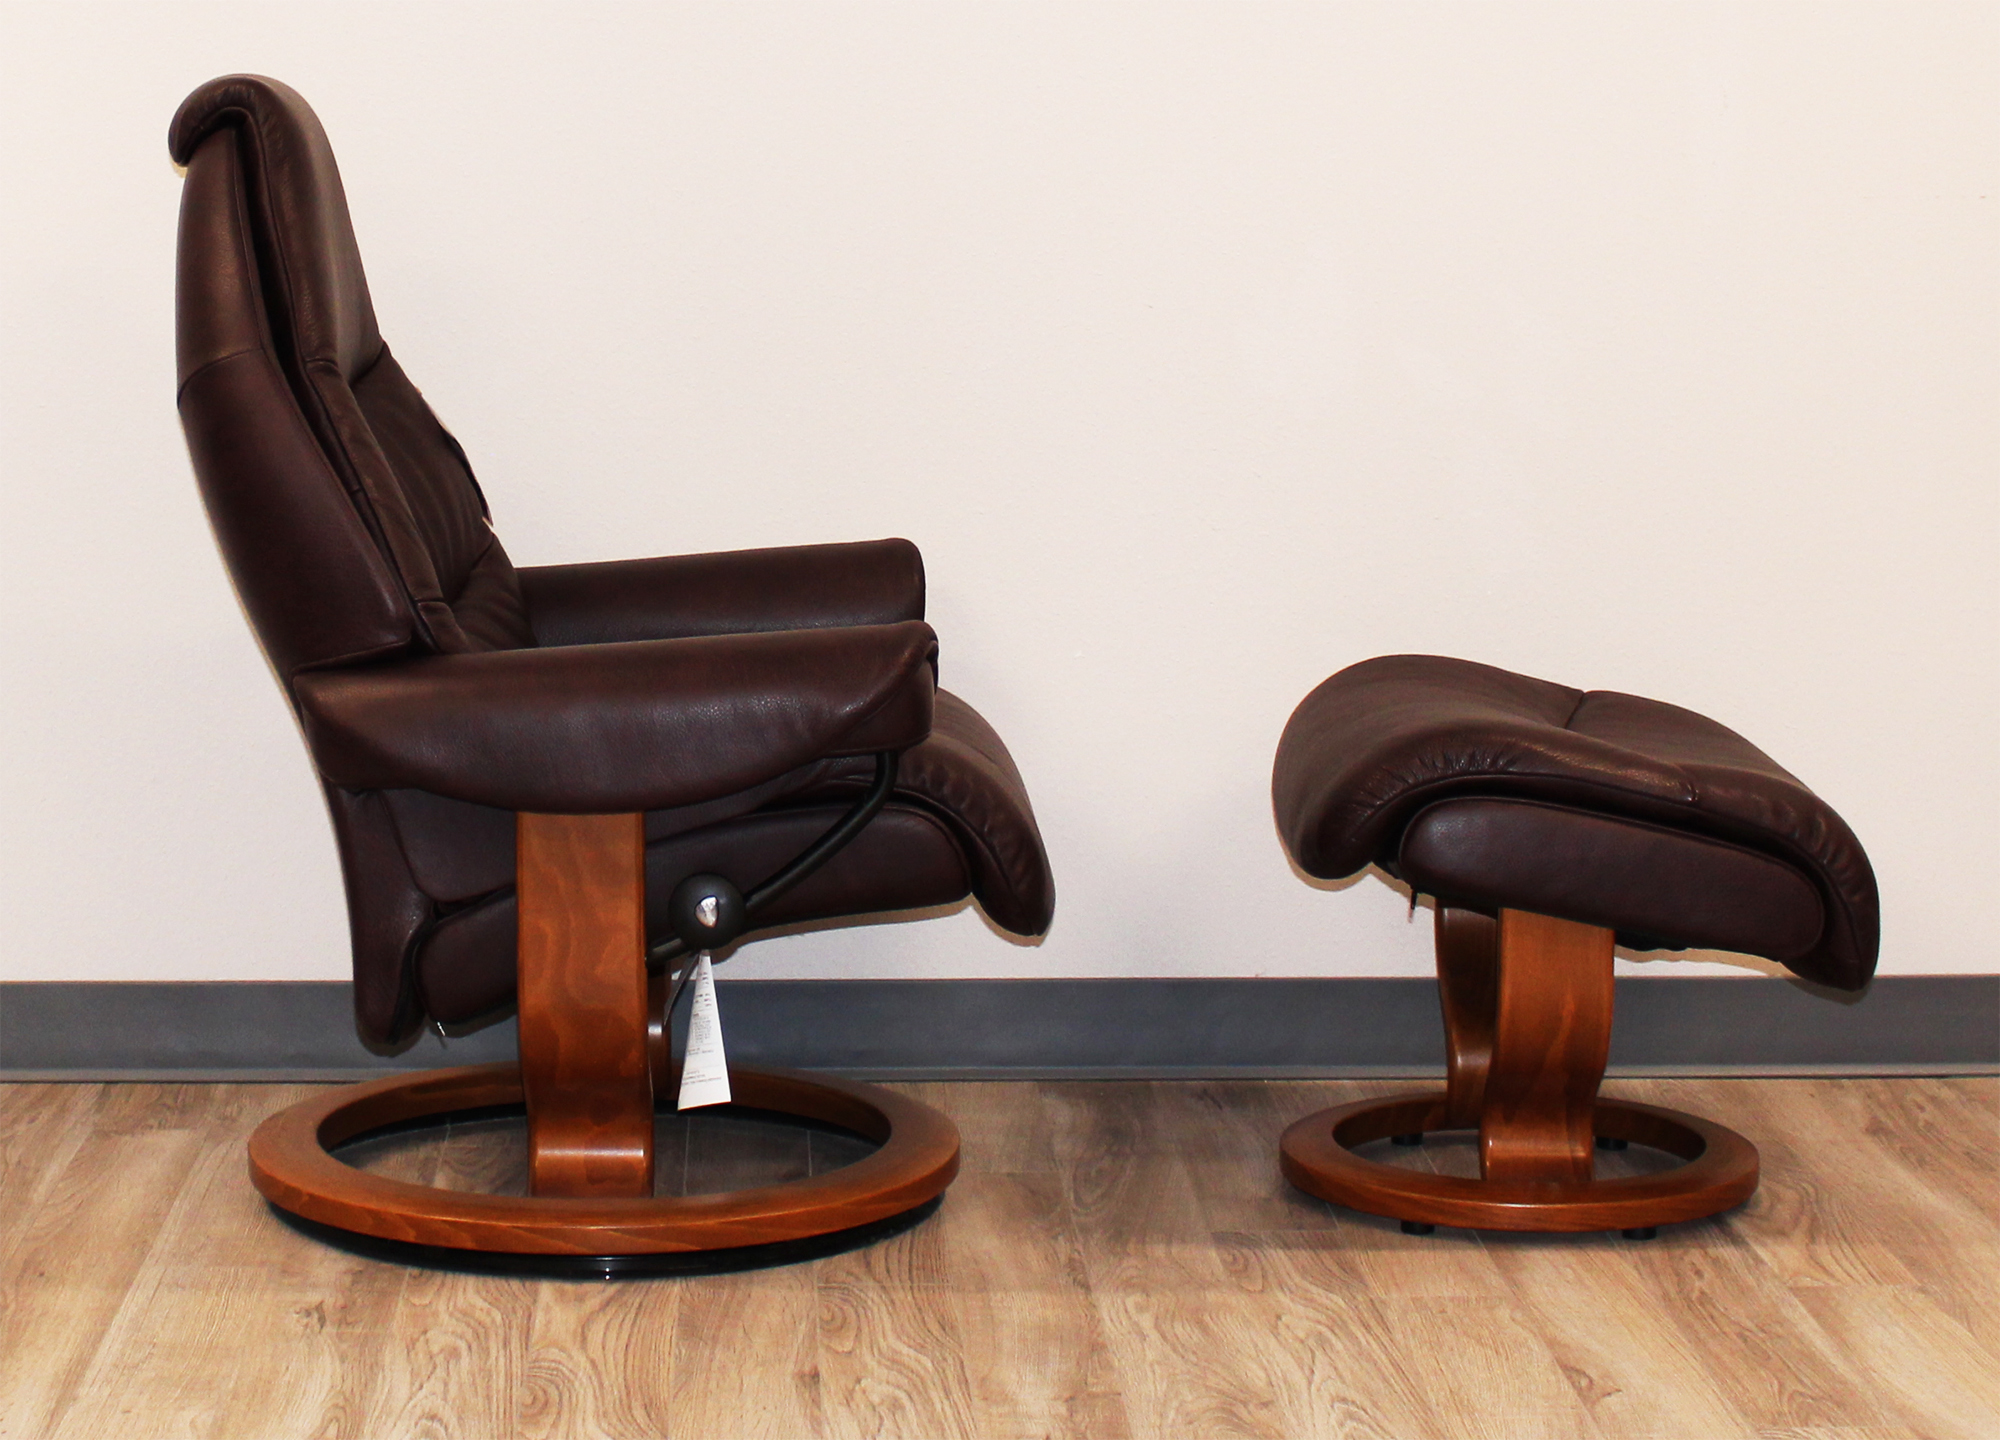 Voyager Premium Royalin Amarone Leather Recliner Chair and Ottoman